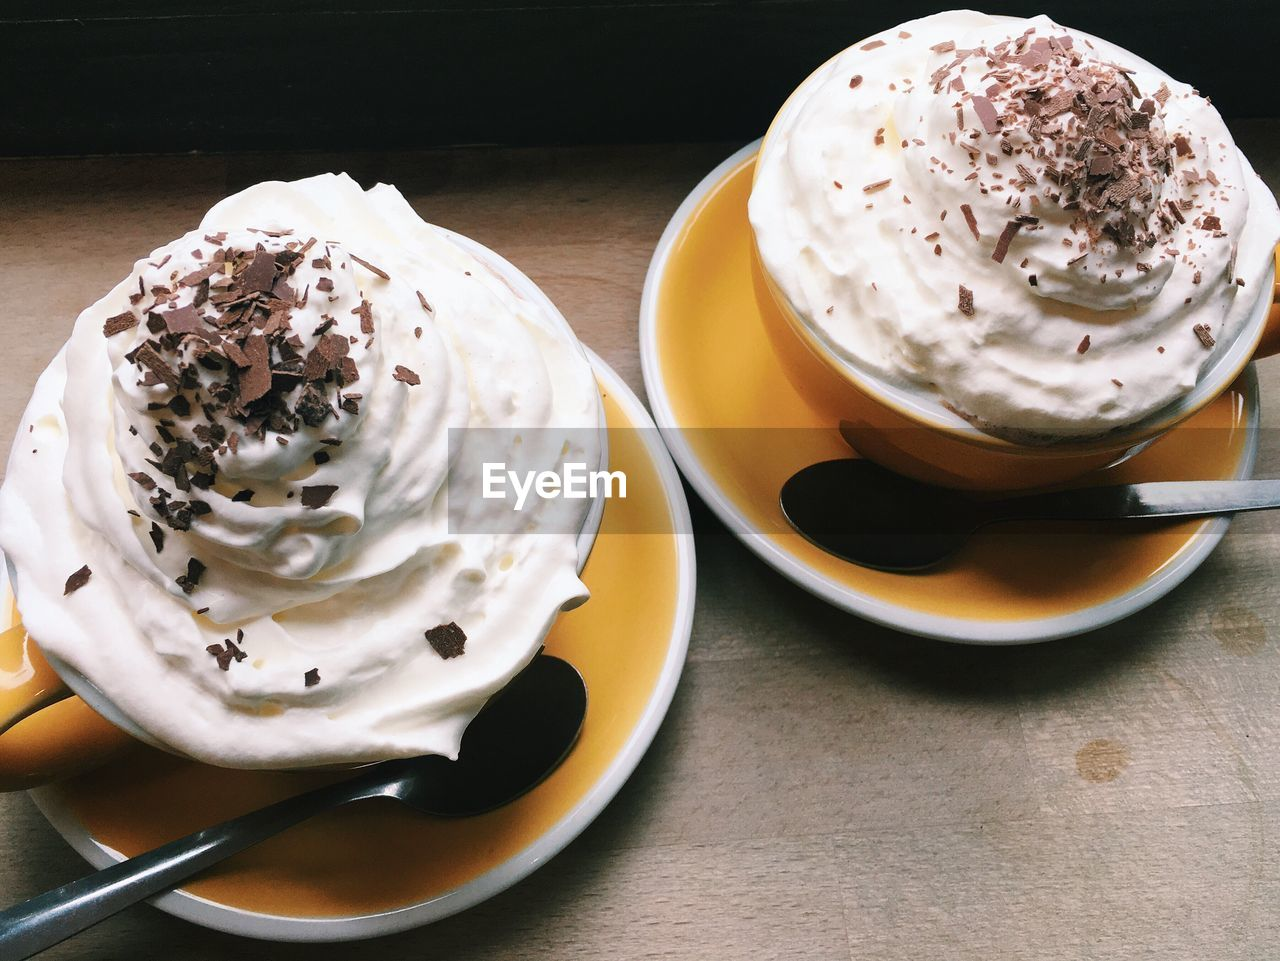 Coffee With Whipped Cream In Cups On Table